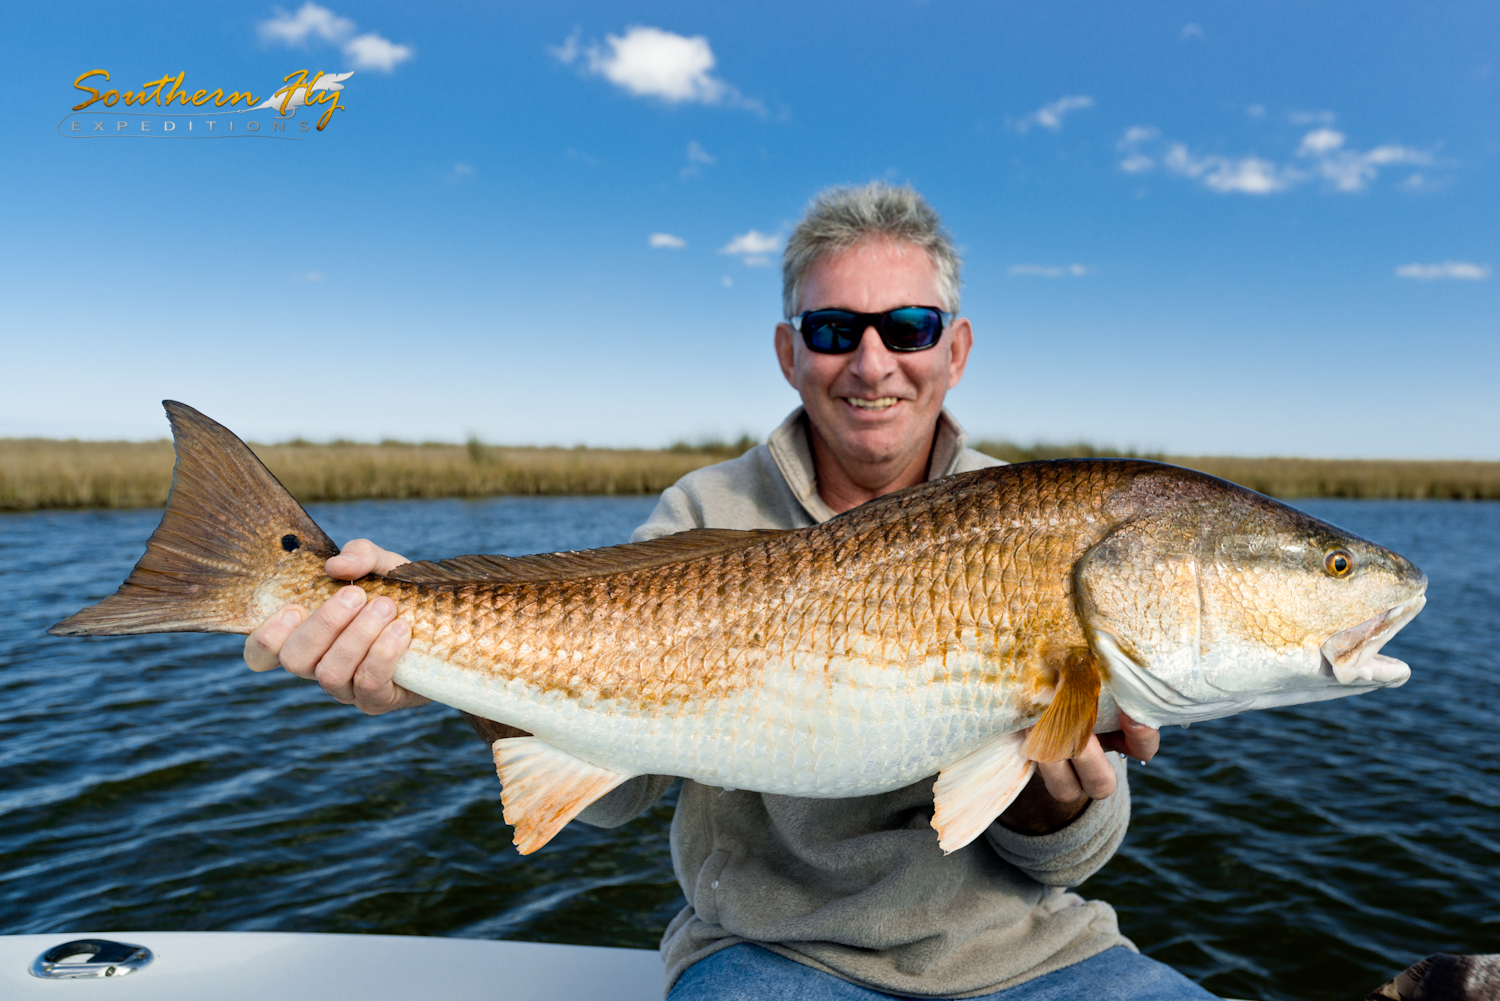 Sight Fishing for Redfish - Southern Fly Expeditions of New Orleans